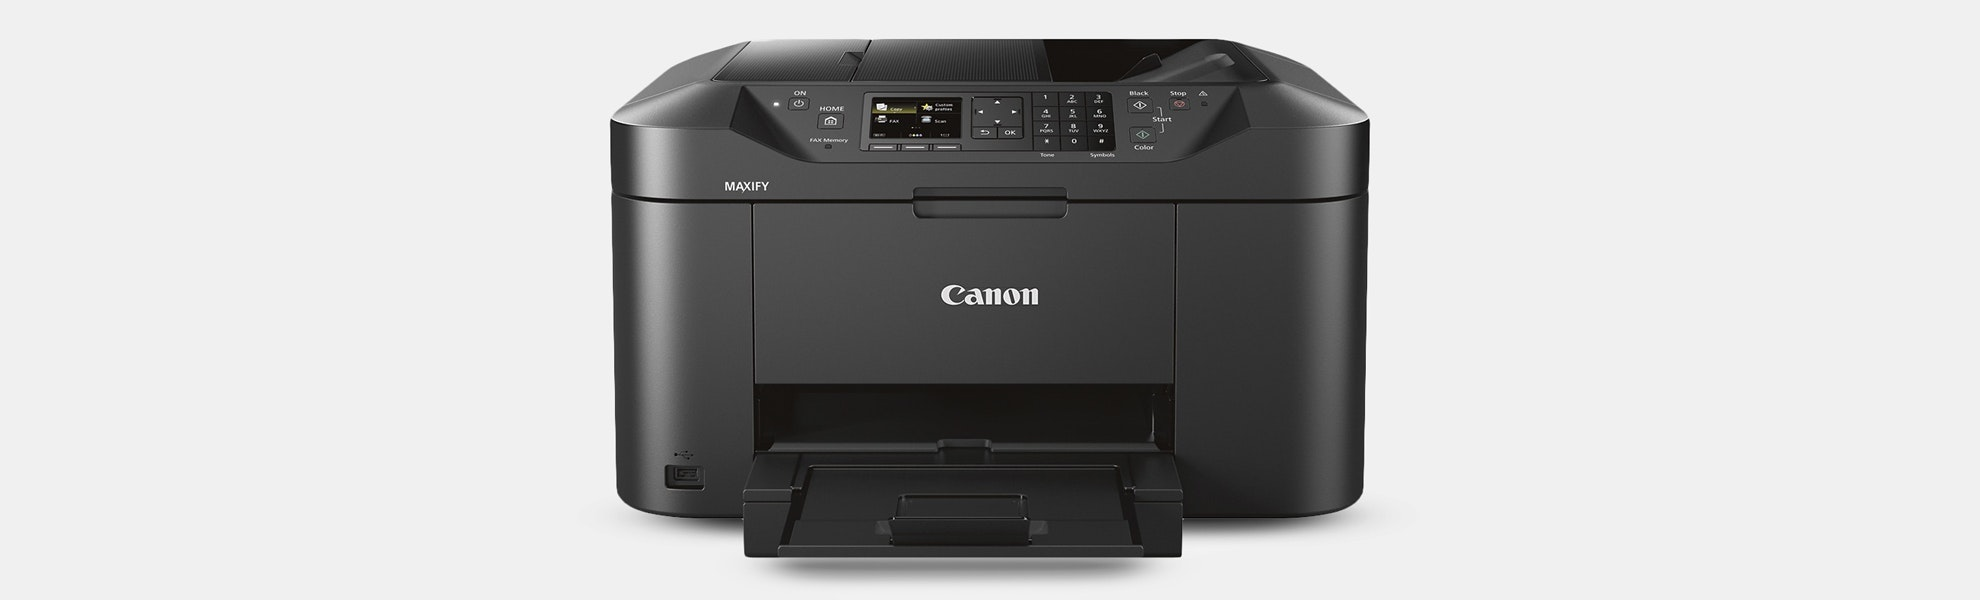 Canon MB2120 Maxify Printer